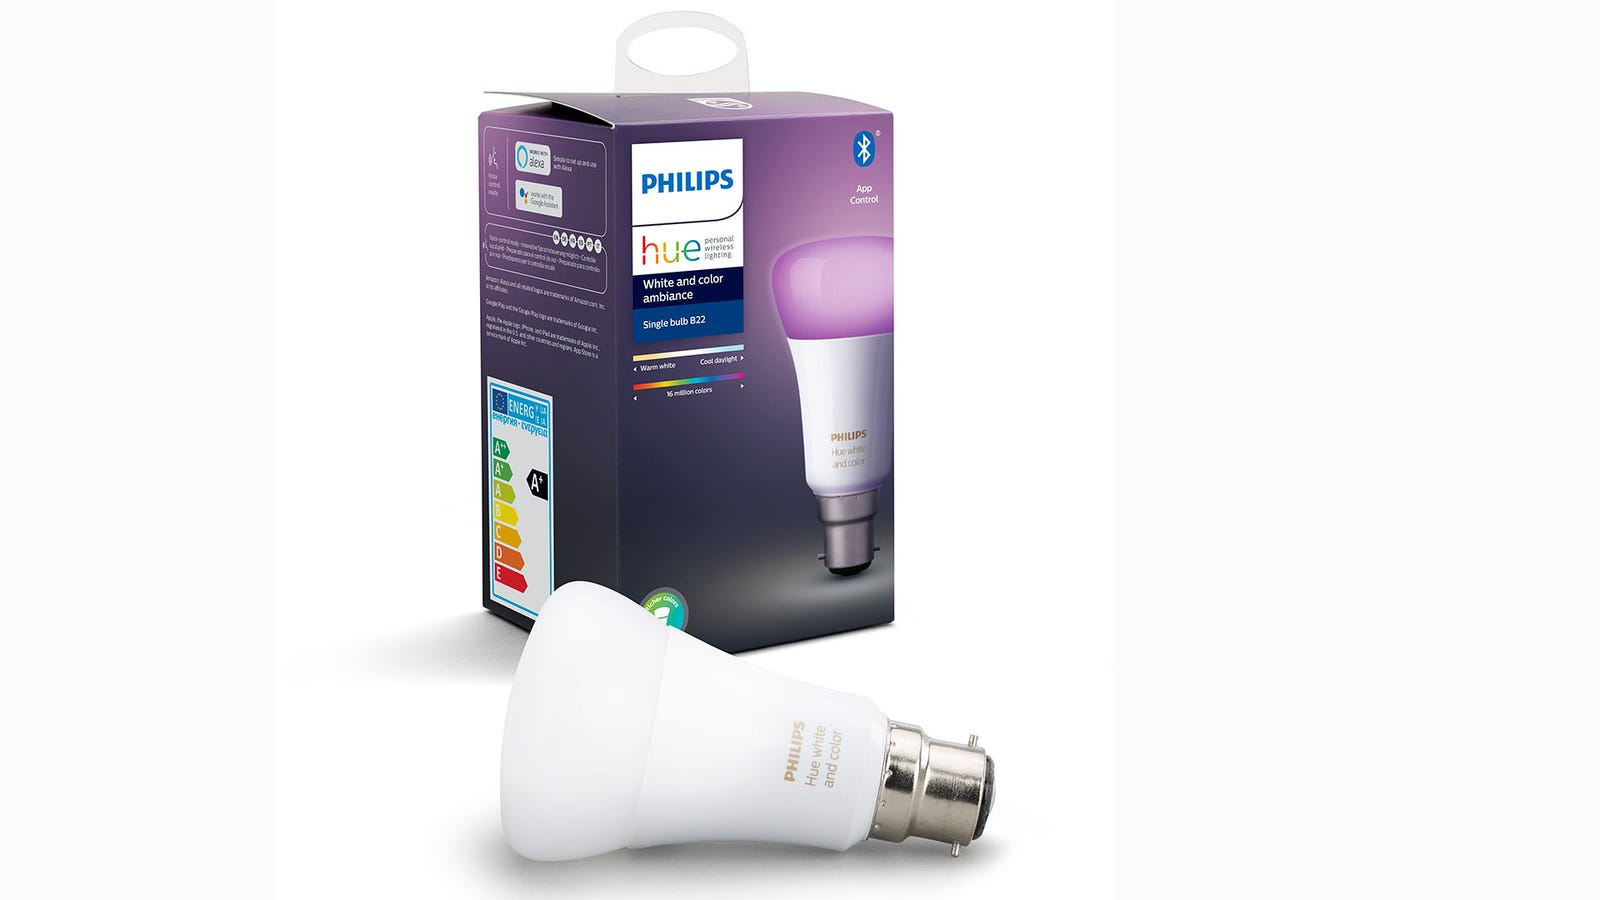 Philips Announces Hue with Bluetooth Bulbs That Don't Need a Hub